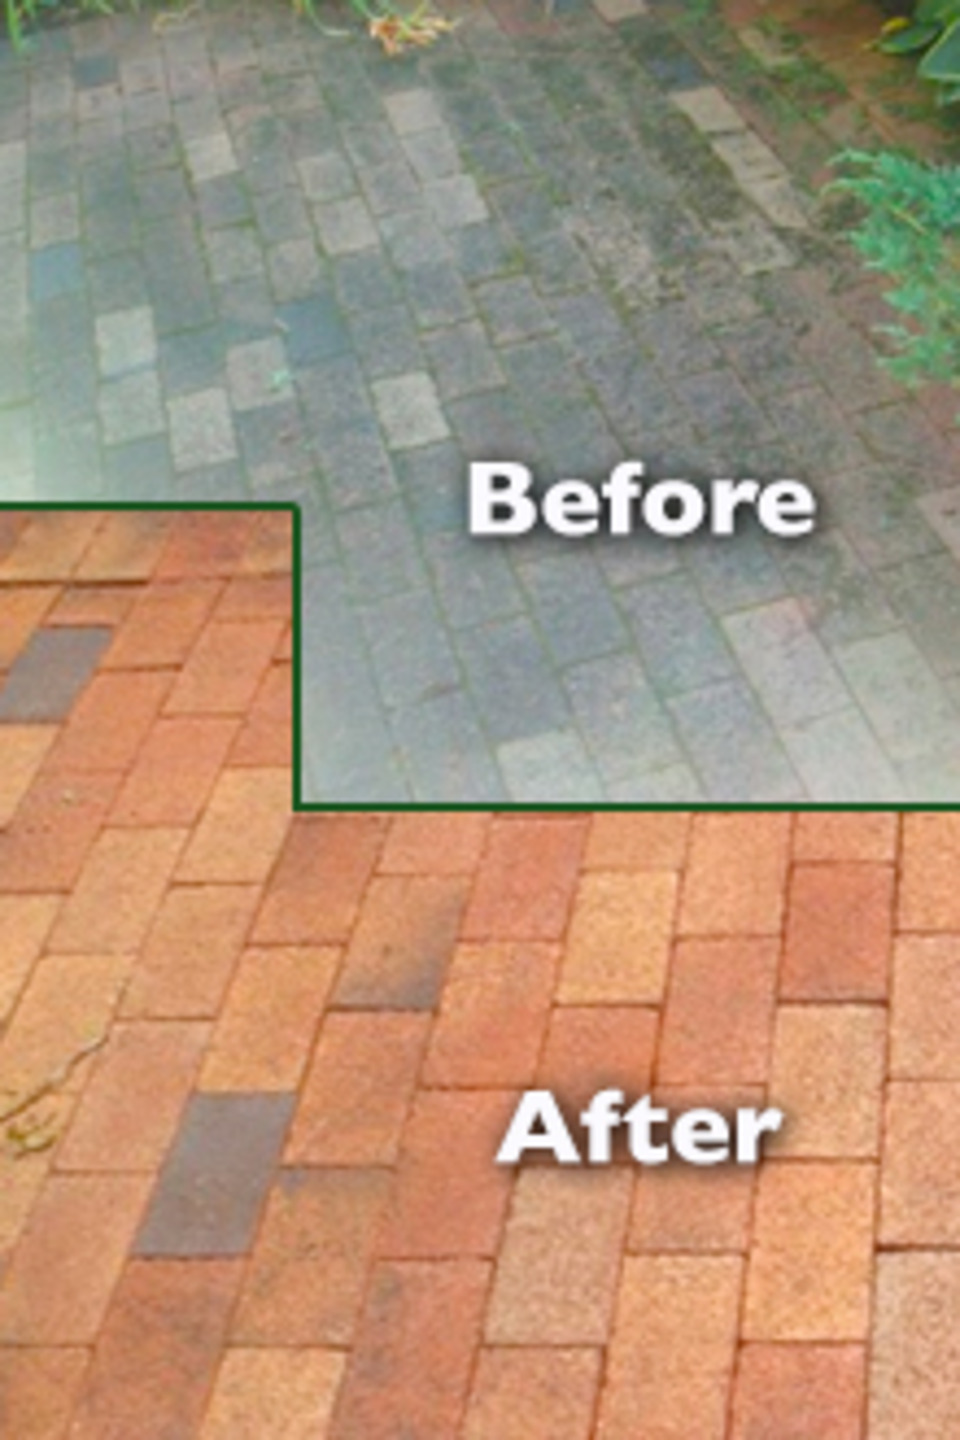 Long Island Brick & Walkway Cleaning Service - Go Green Clean Roof Cleaning Specialists Long Island NY